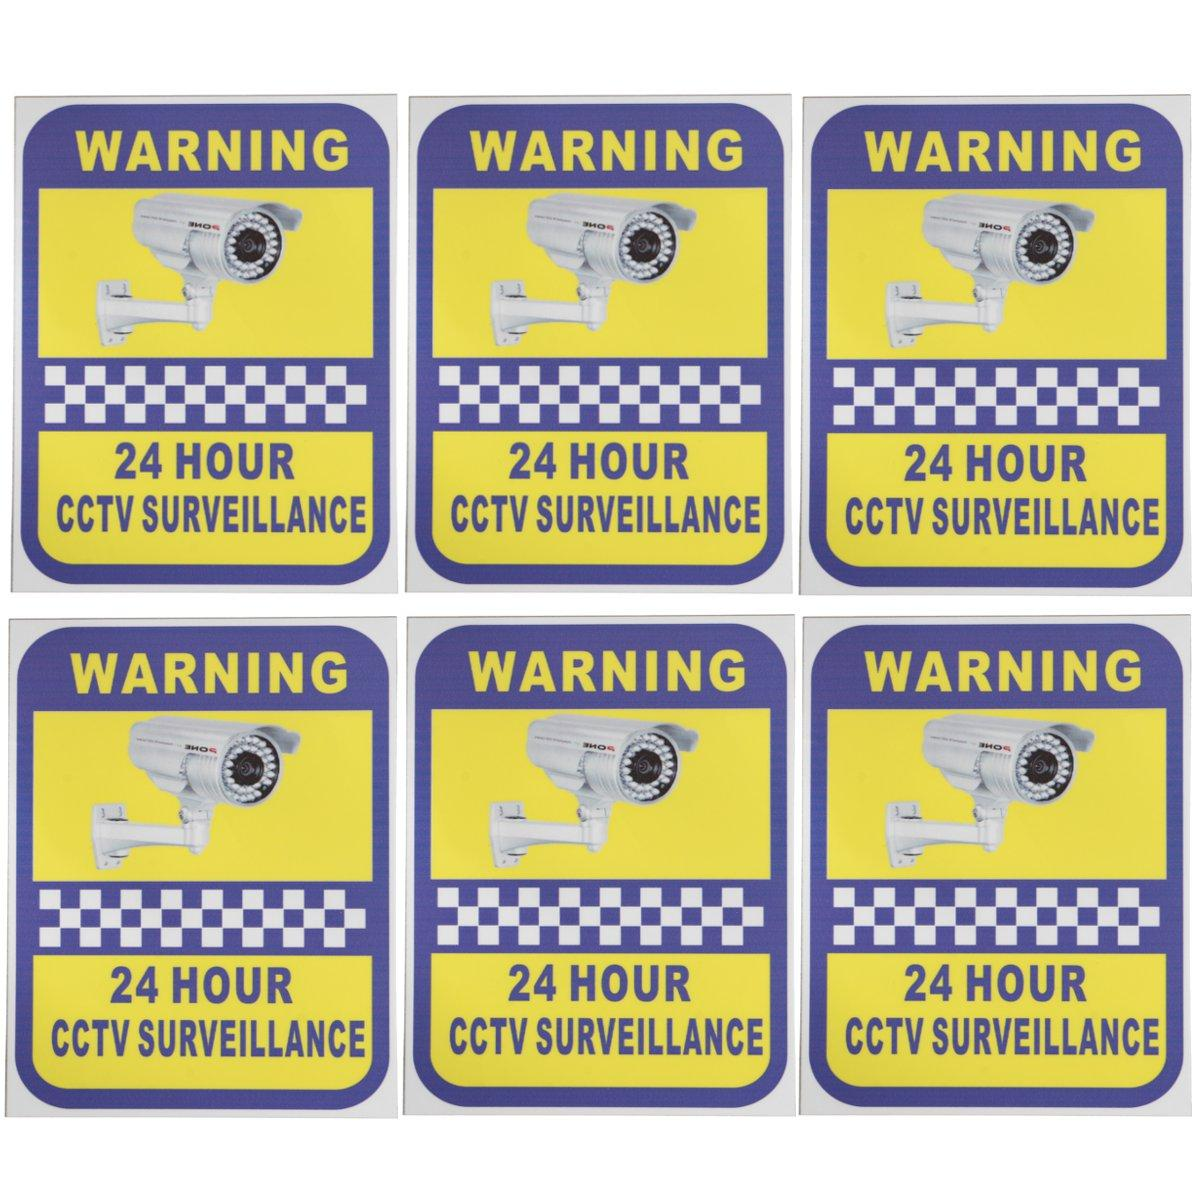 Safurance 6 Pack Home CCTV Surveillance Security Camera Video Sticker Warning Decal Signs Safety new safurance 10pcs lot waterproof sunscreen pvc home cctv video surveillance security camera alarm sticker warning decal signs